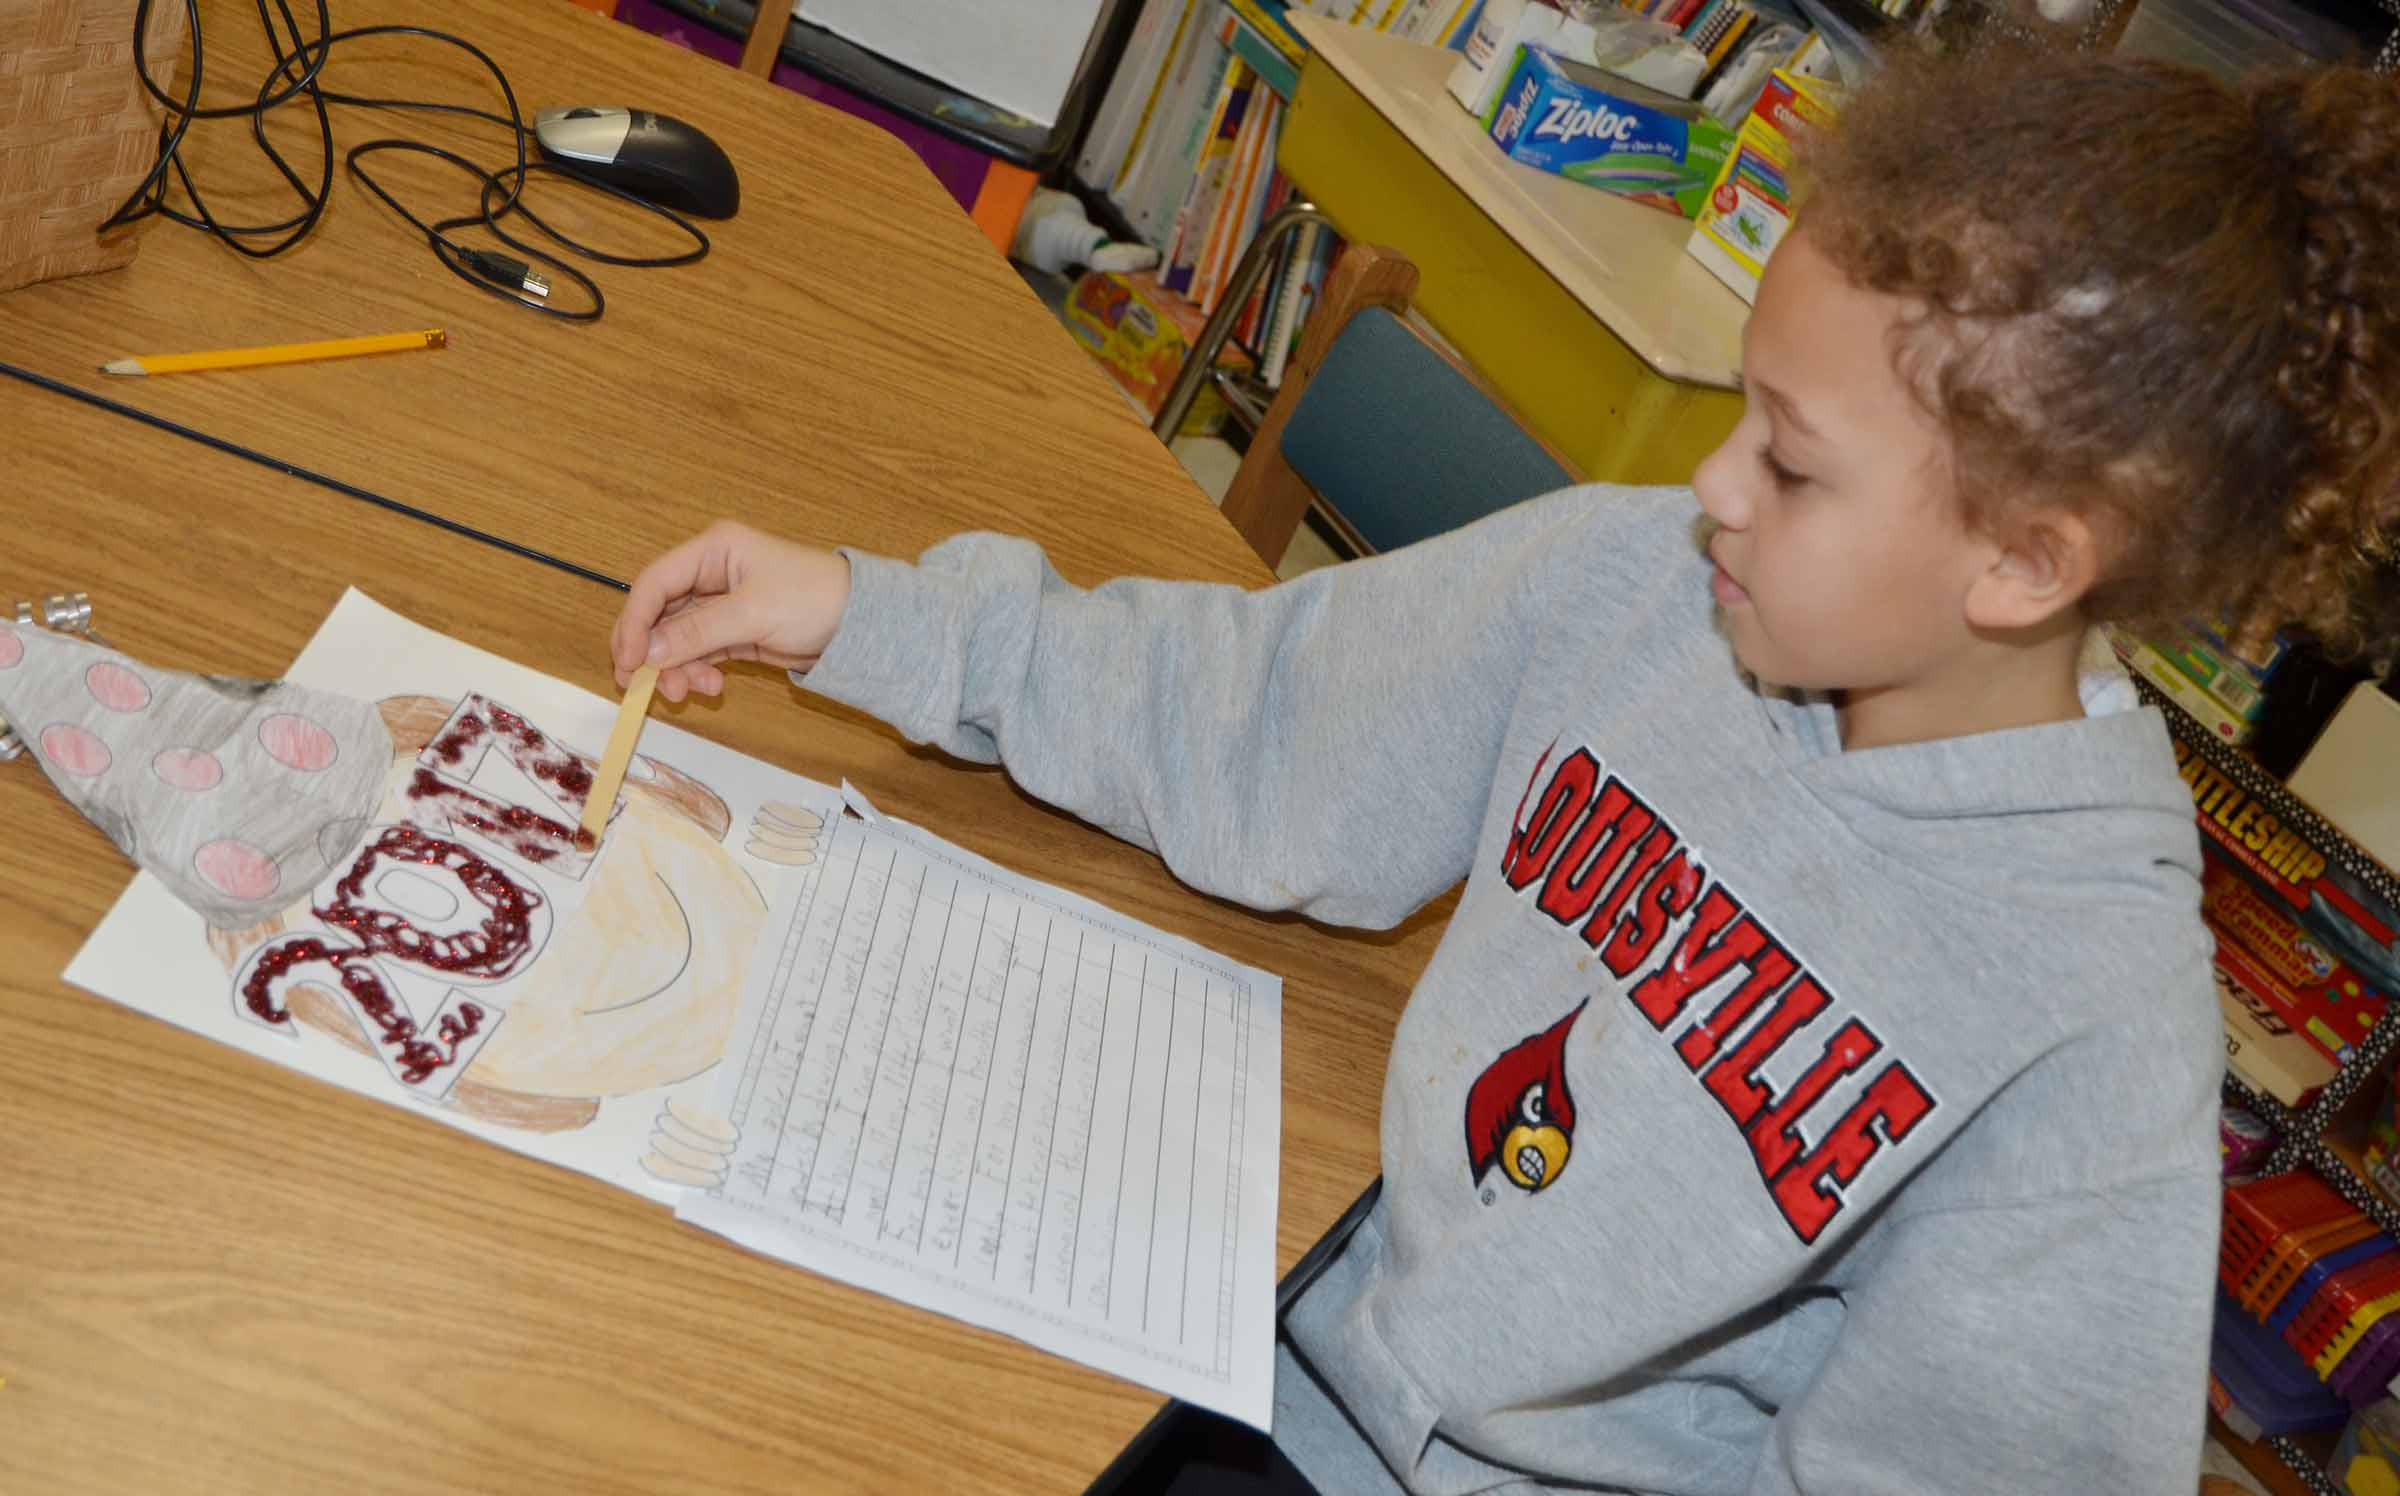 CES third-grader Alicia Spaulding adds glitter glue to her New Year's resolution.